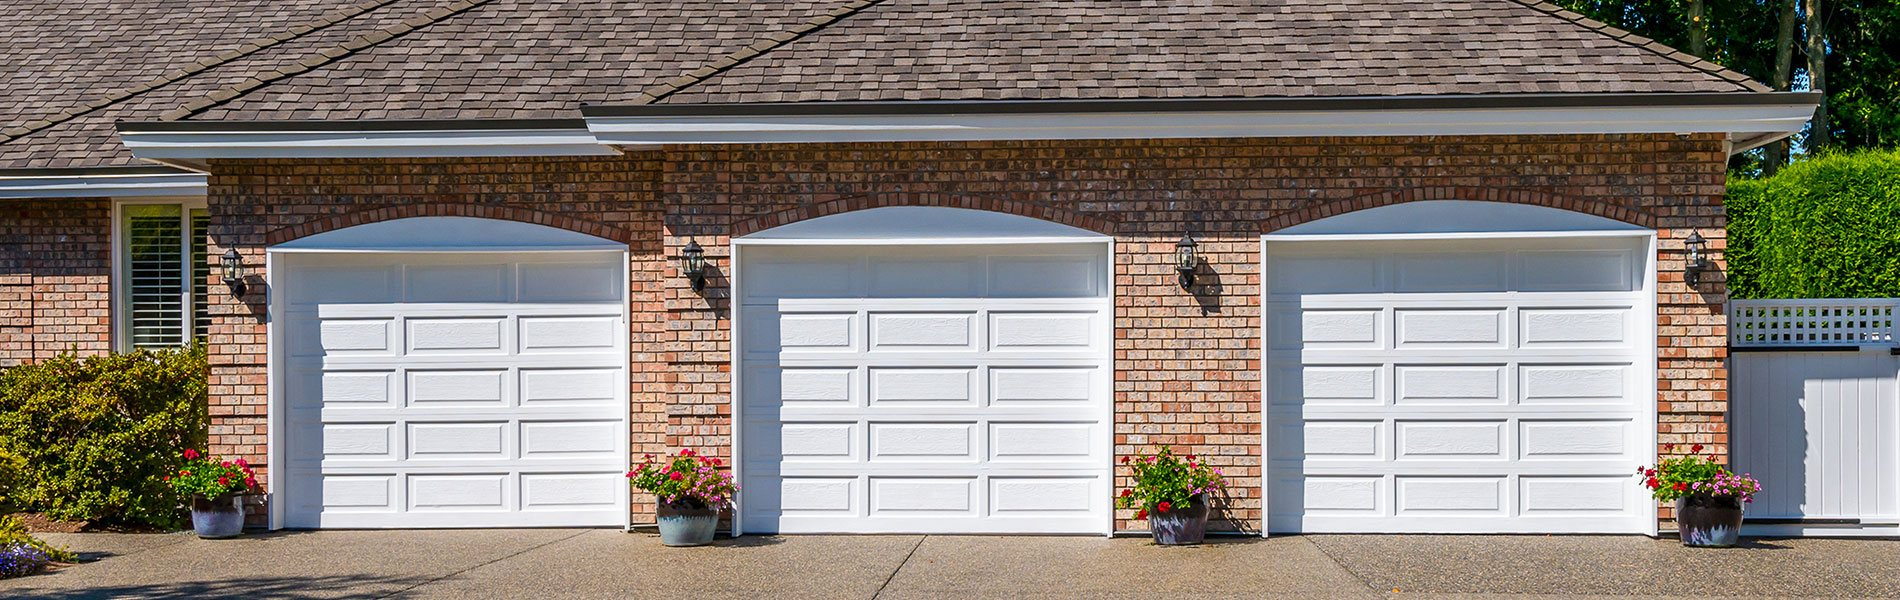 Galaxy Garage Door Service, Walnut, CA 909-435-0013